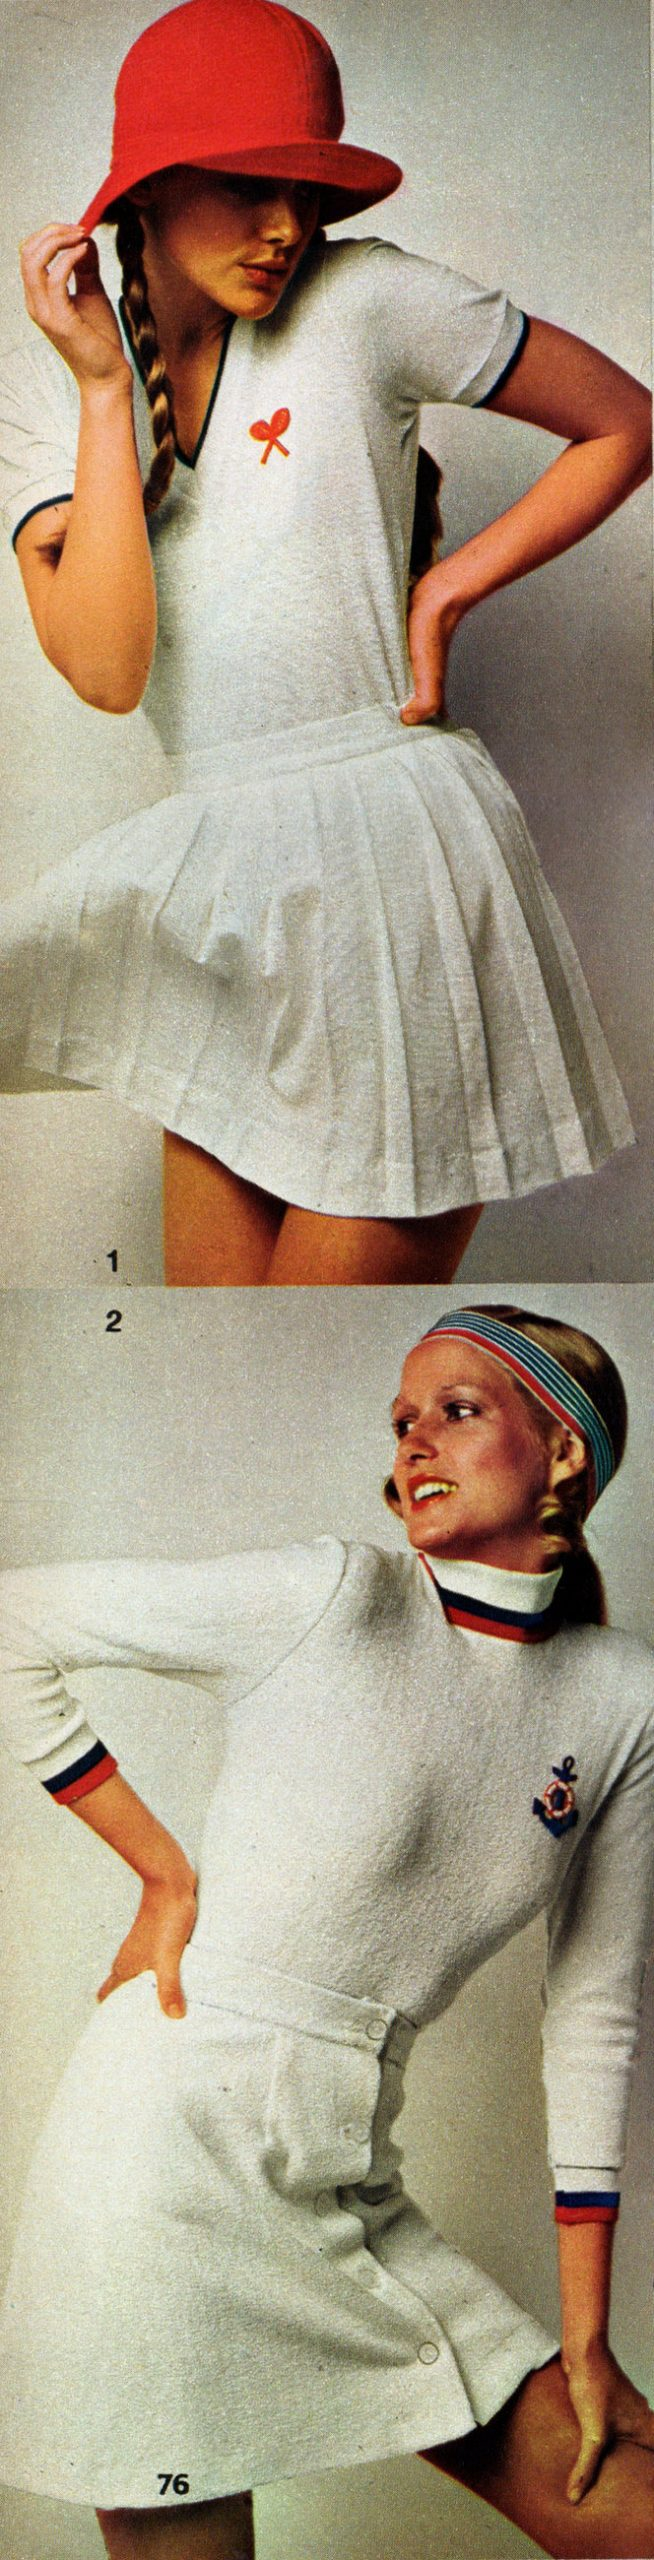 Foxy fashions and accessories for her from 1972 (4)